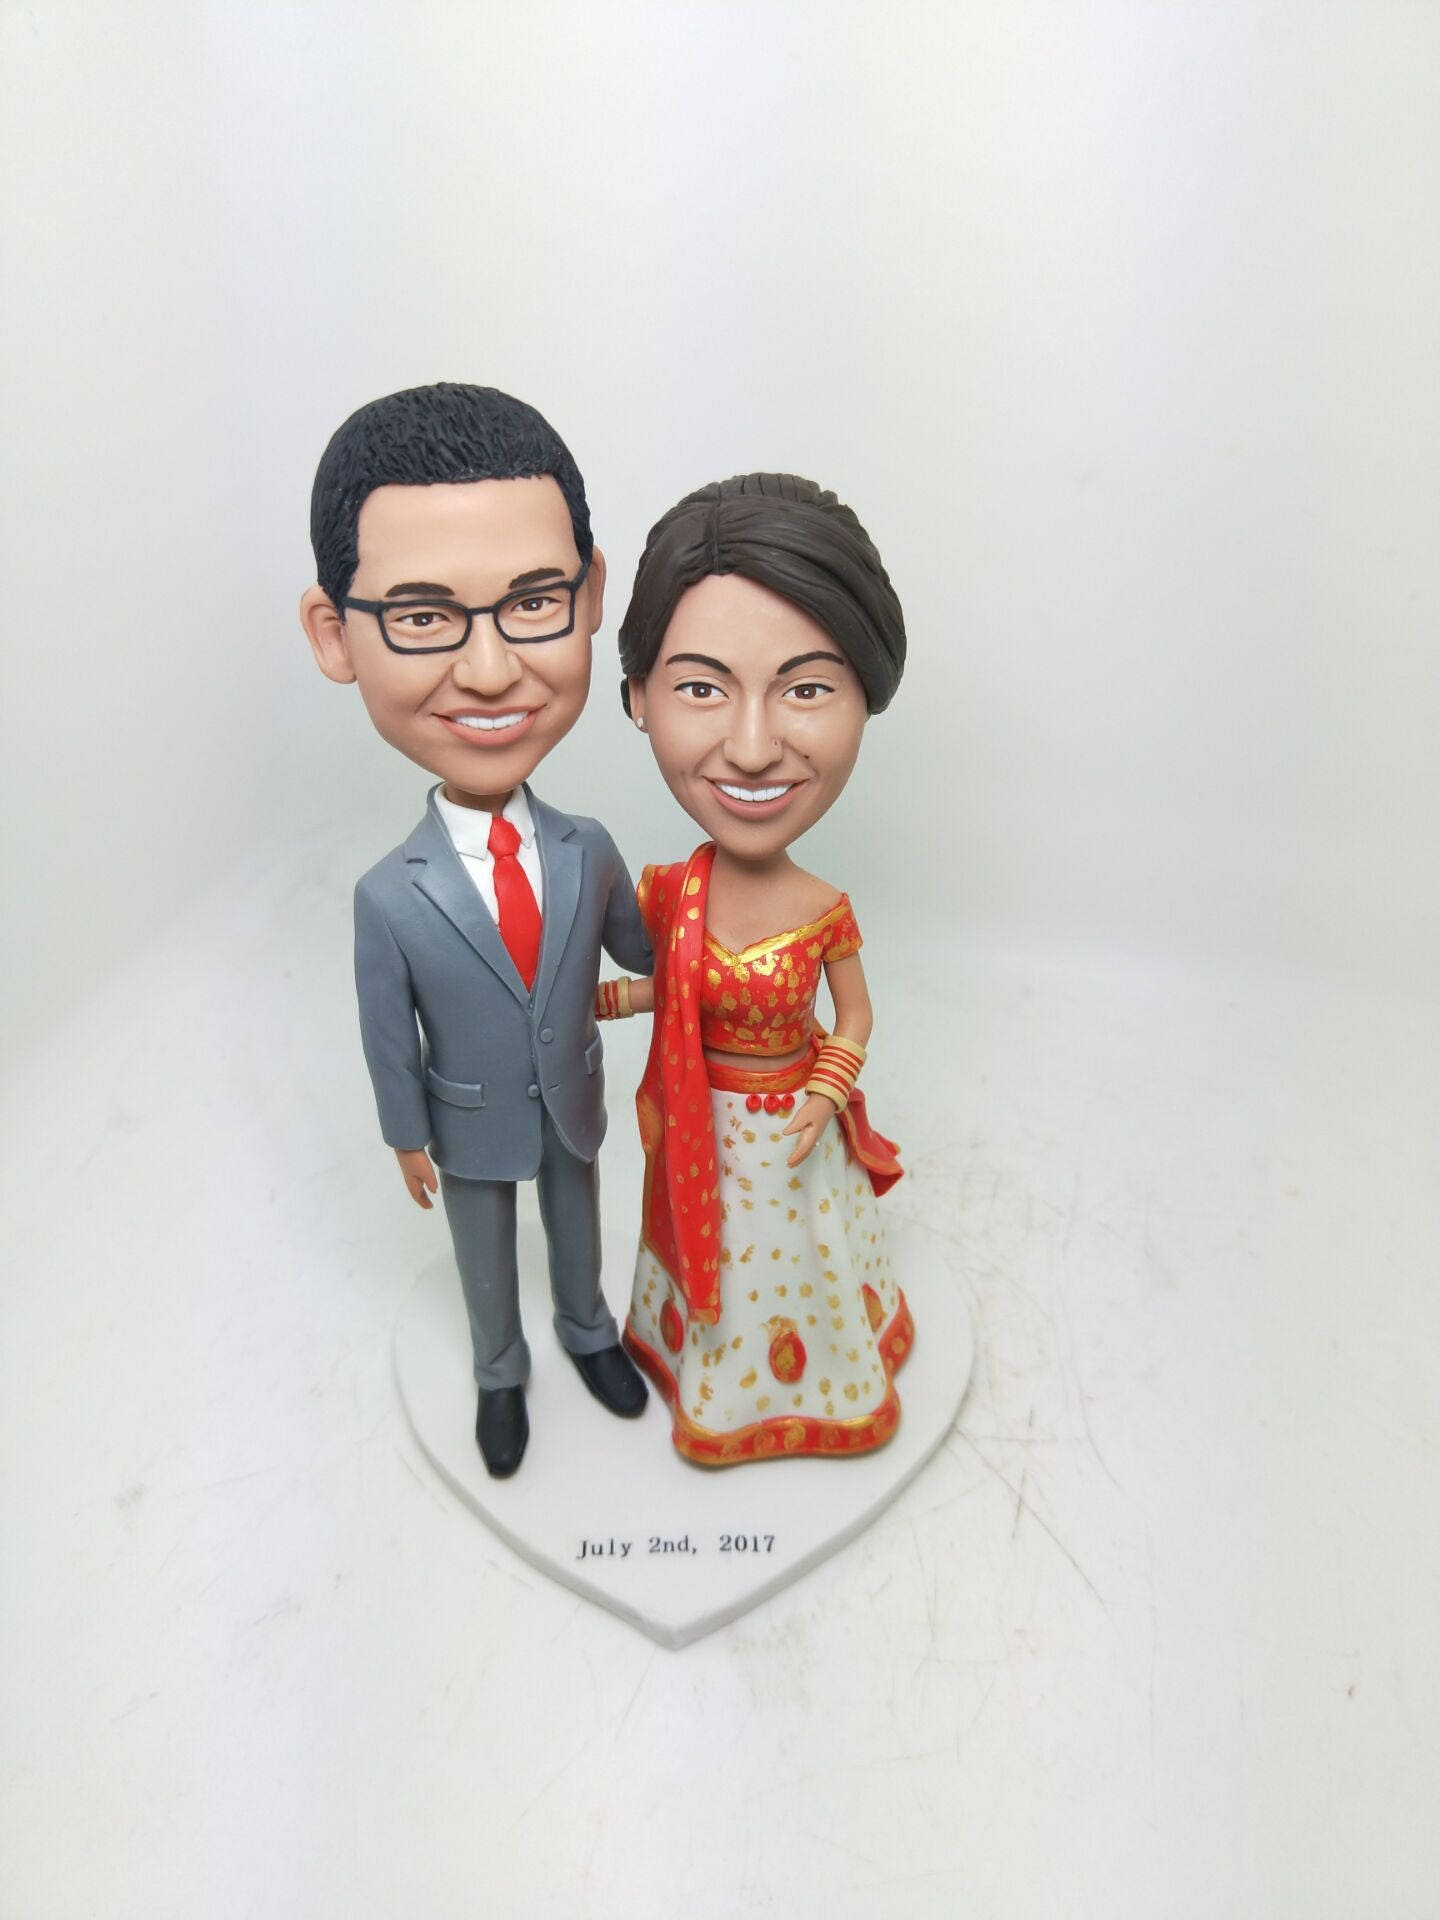 Custom Indian Bride Personalized Wedding Cake Topper Indian